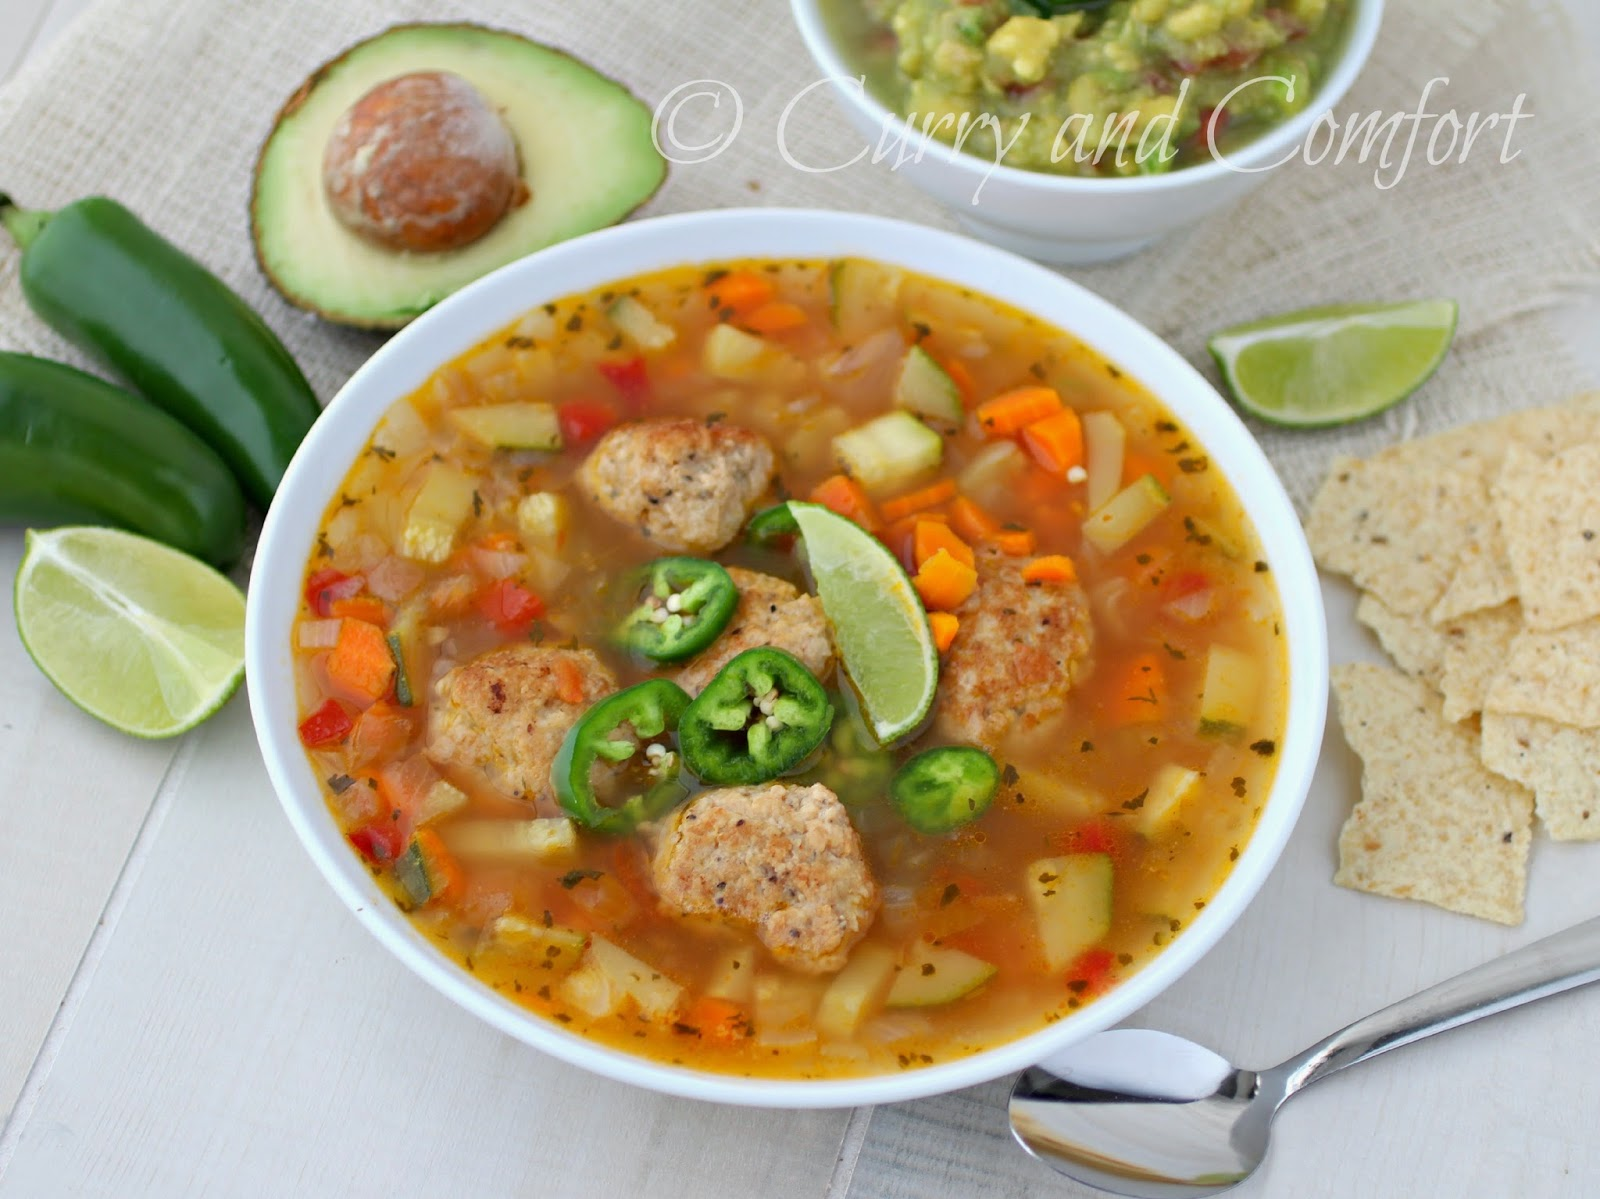 Curry and Comfort: Mexican Meatball Soup (Albondigas) Low Carb Version